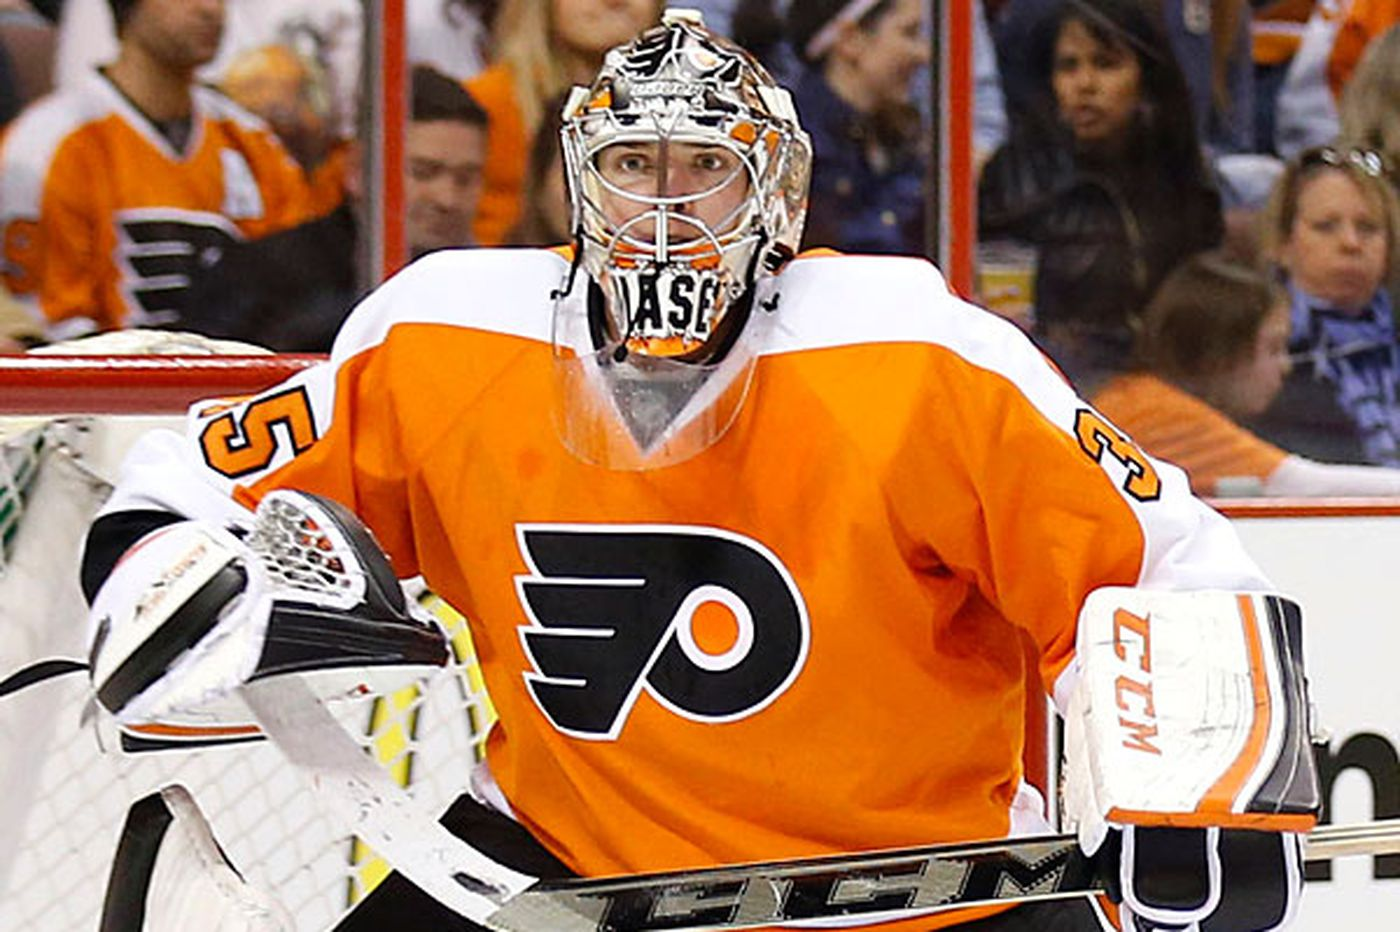 Flyers' Mason works out, but it's still unsure he will play